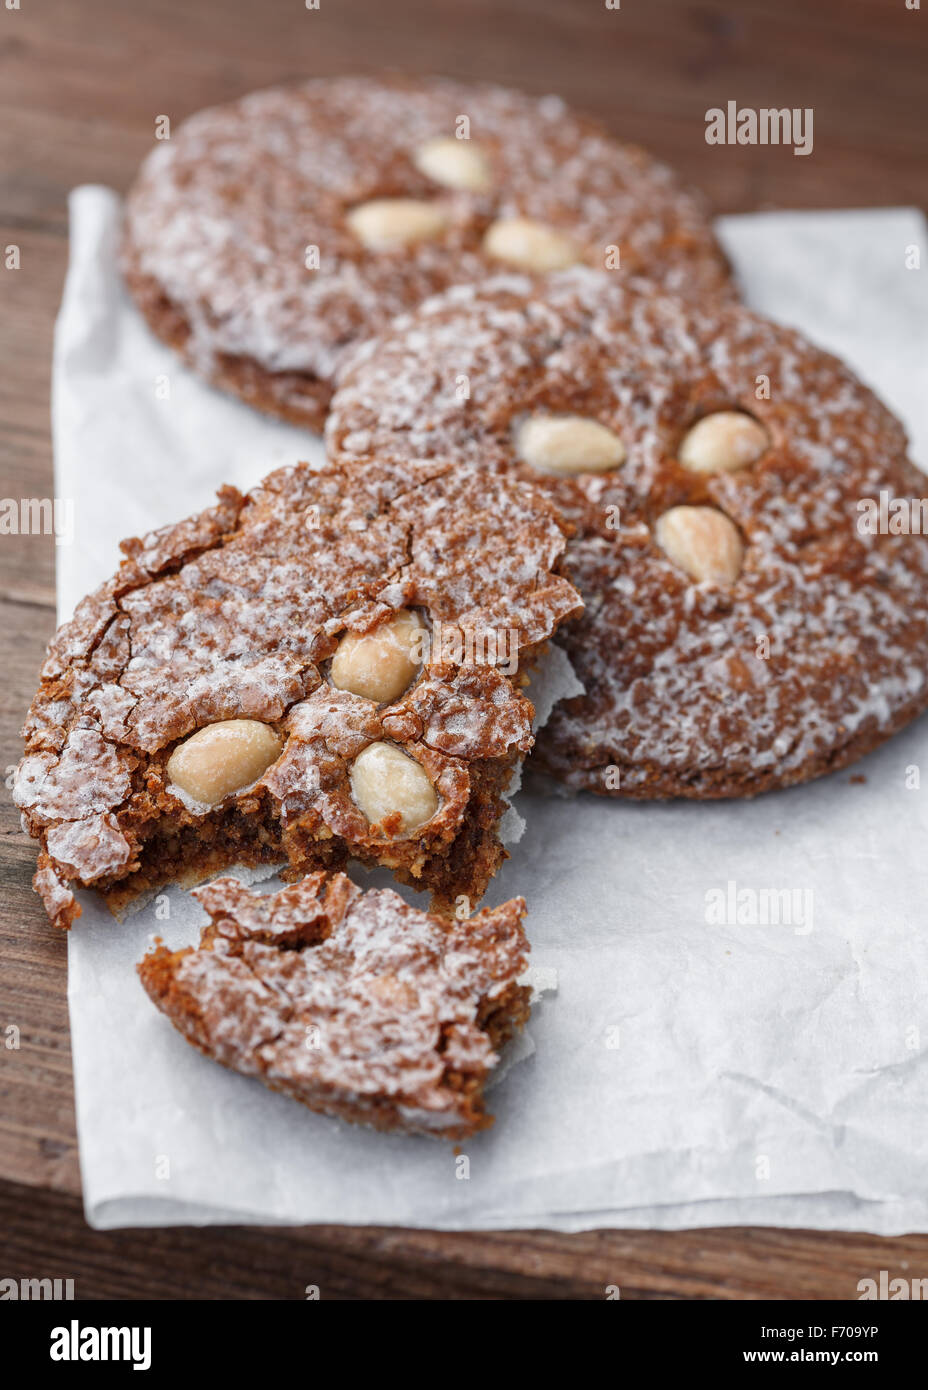 Lebkuchen, allemand Spice Cookies aux amandes Photo Stock